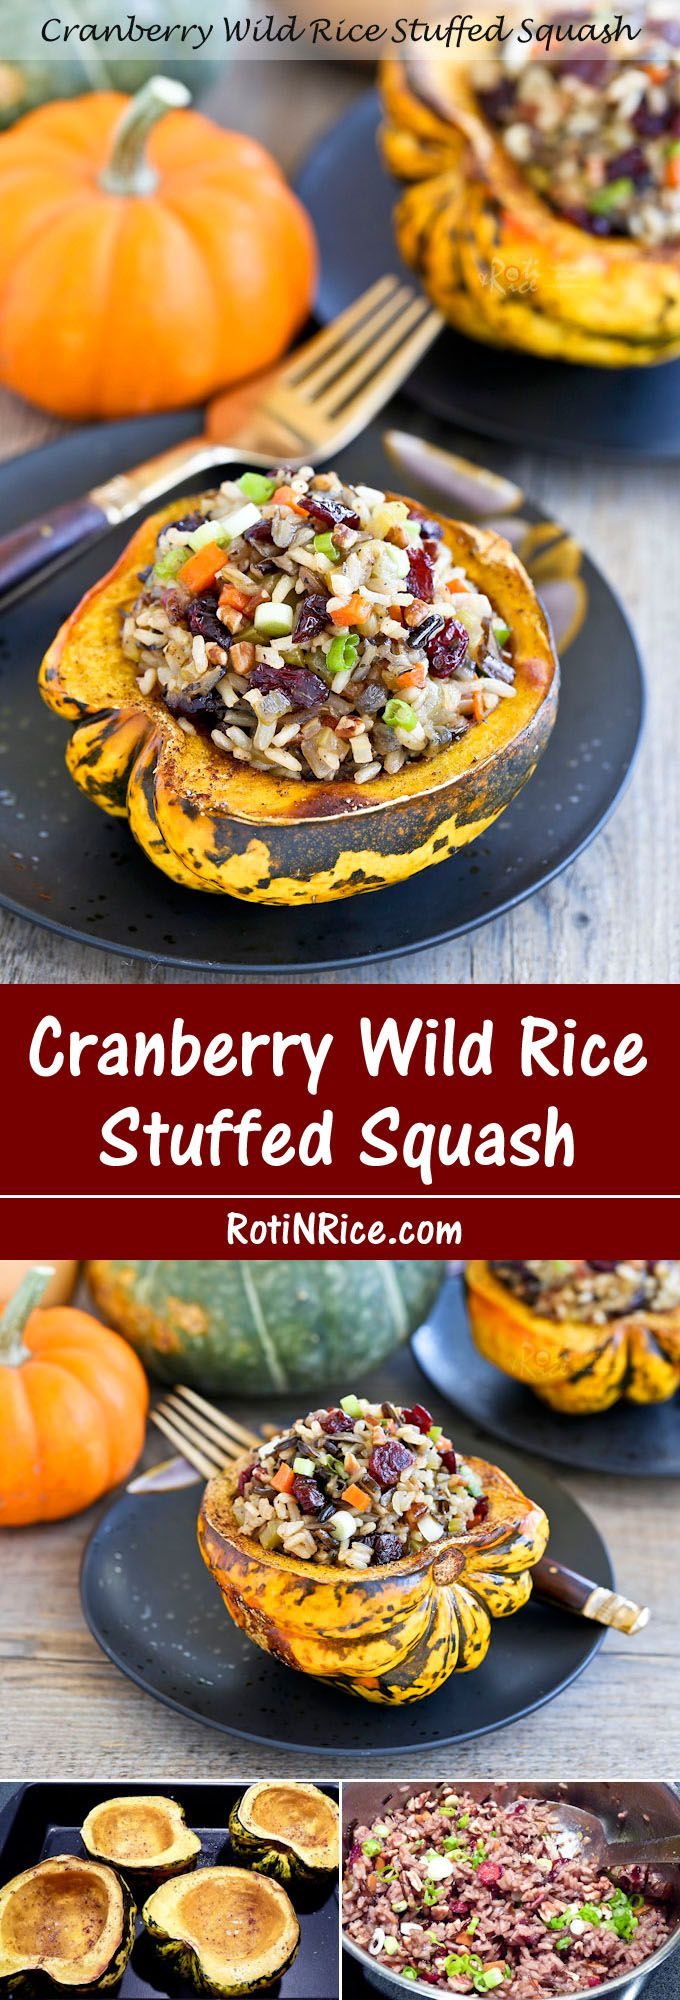 This fall favorite Cranberry Wild Rice Stuffed Squash is festive and flavorful. It is delicious served as a main course or side dish.   Food to gladden the heart at RotiNRice.com